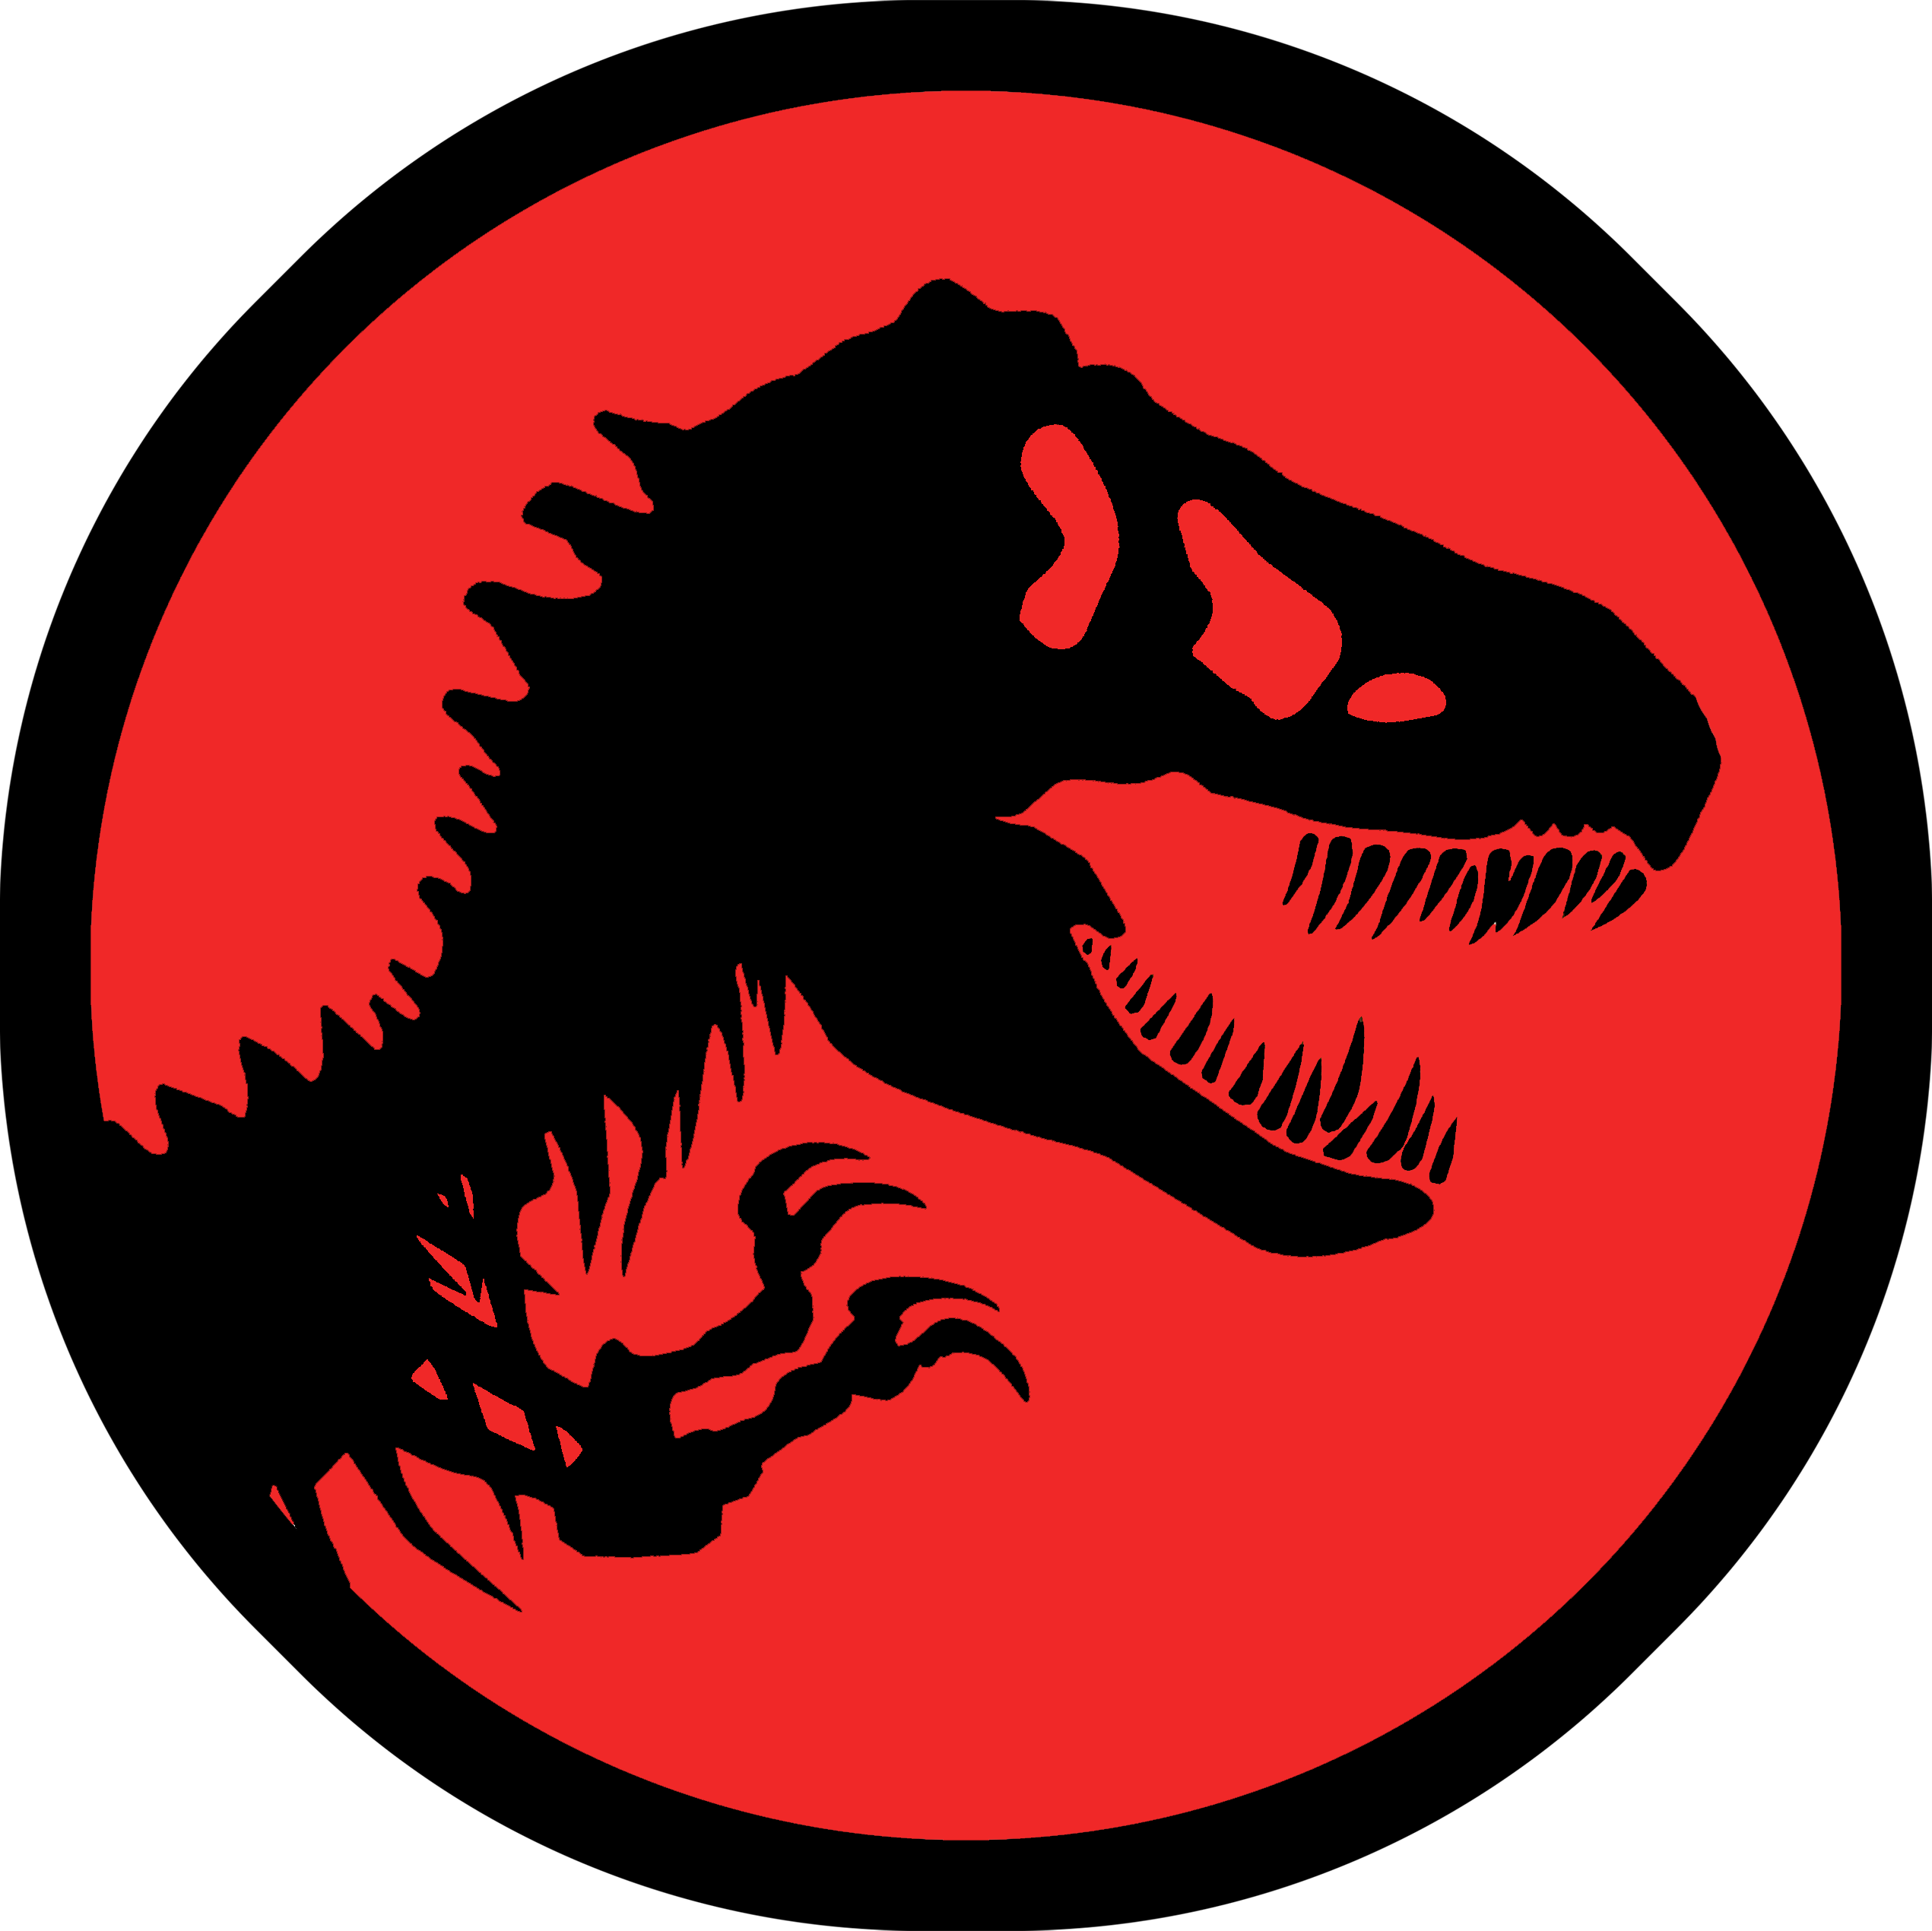 jurassic park jeep png logo